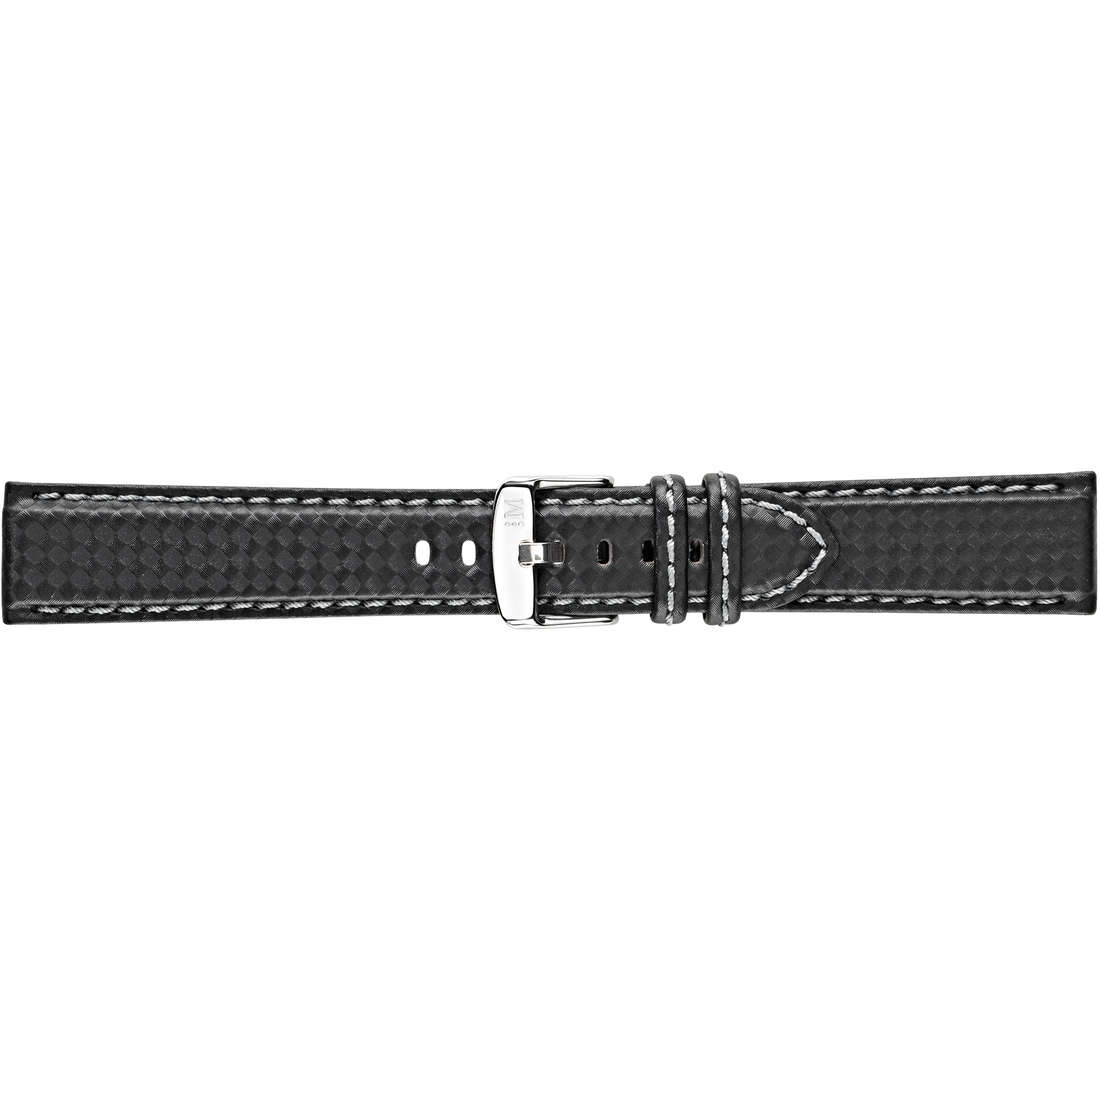 watch watch bands watch straps man Morellato Linea Sport A01U3586977891CR22